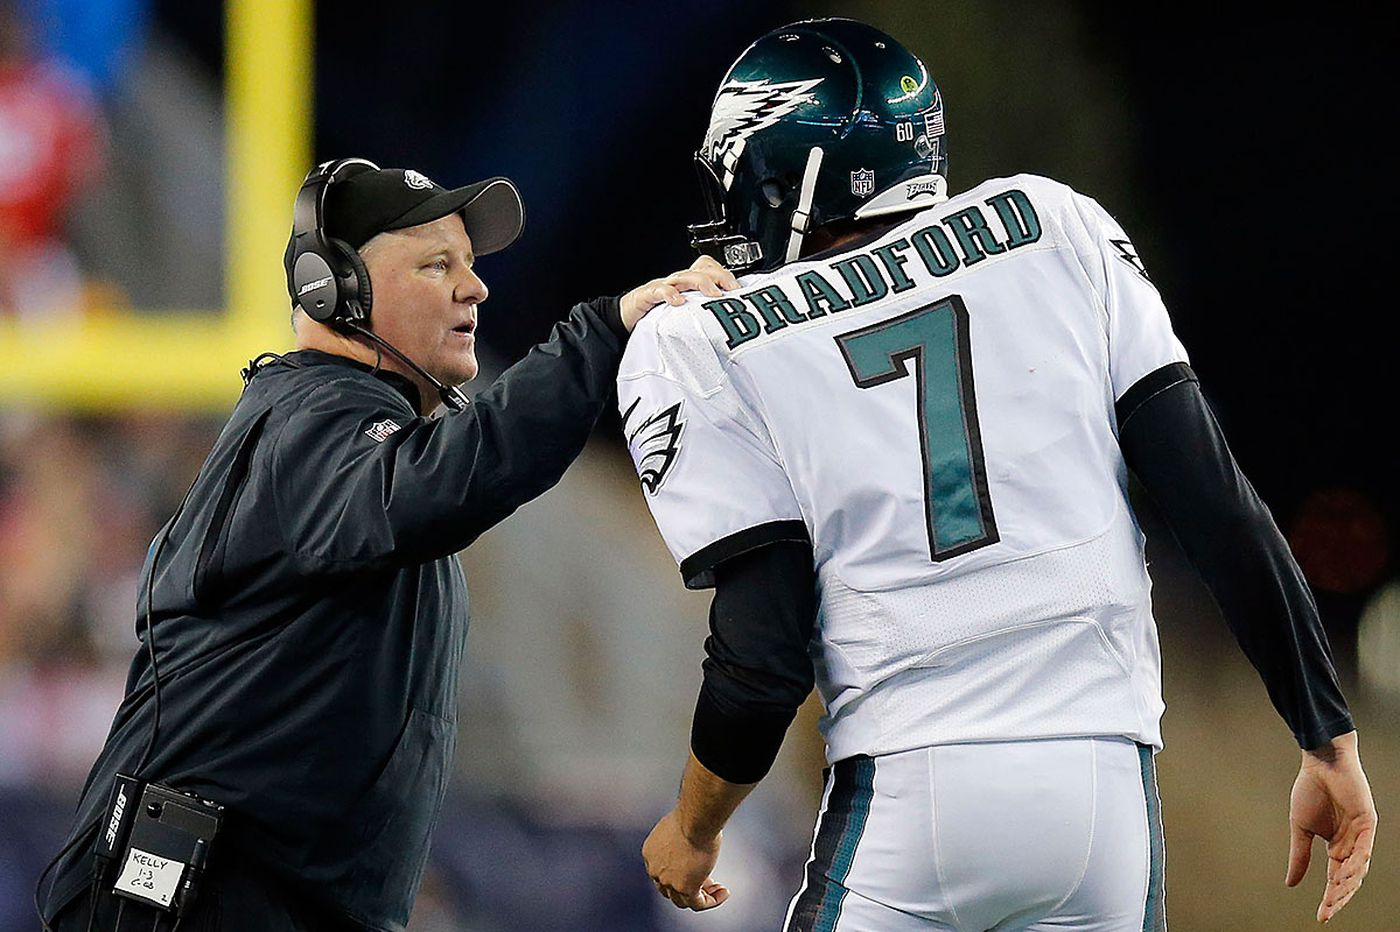 Eagles can be positive, especially in NFC East